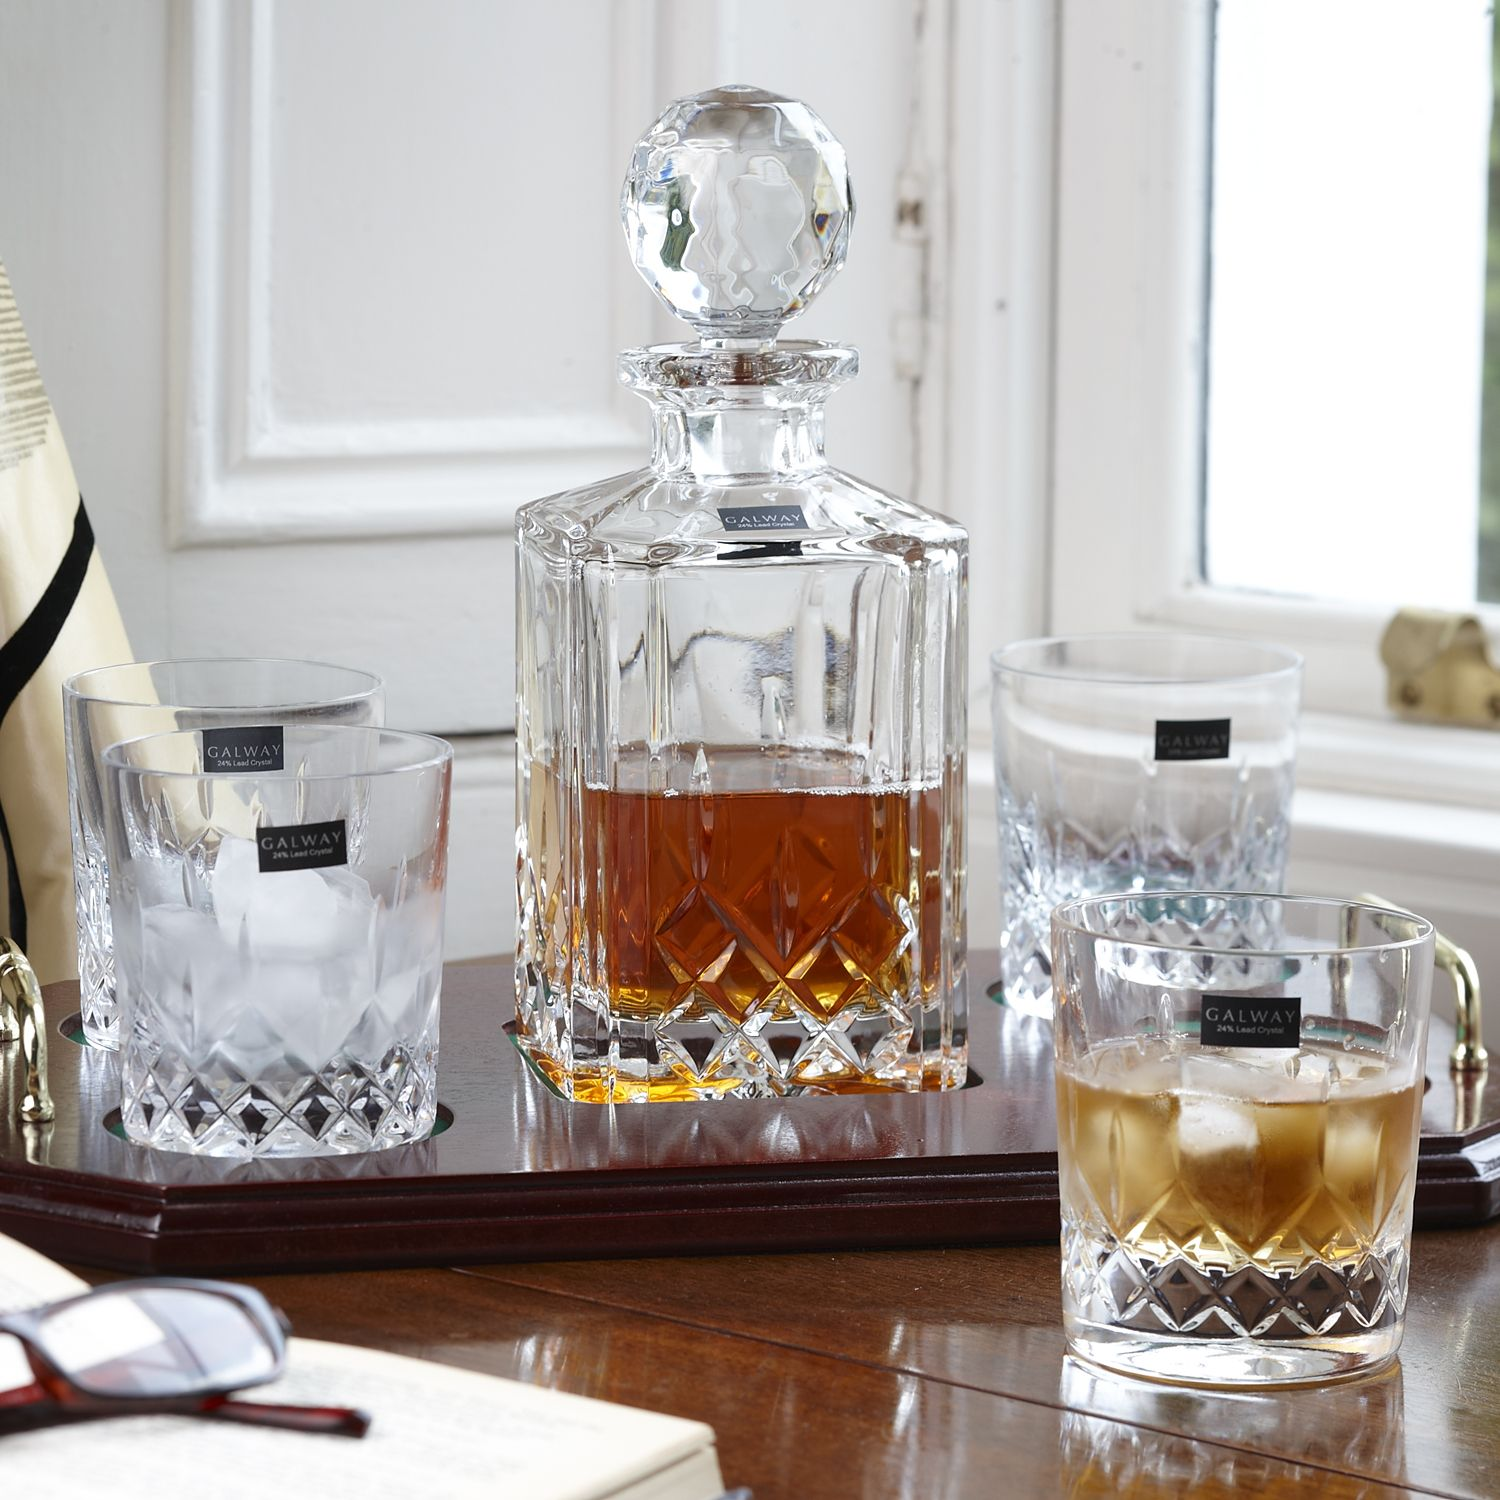 Irish Crystal - Father' Day Dads Love Whiskey Decanter